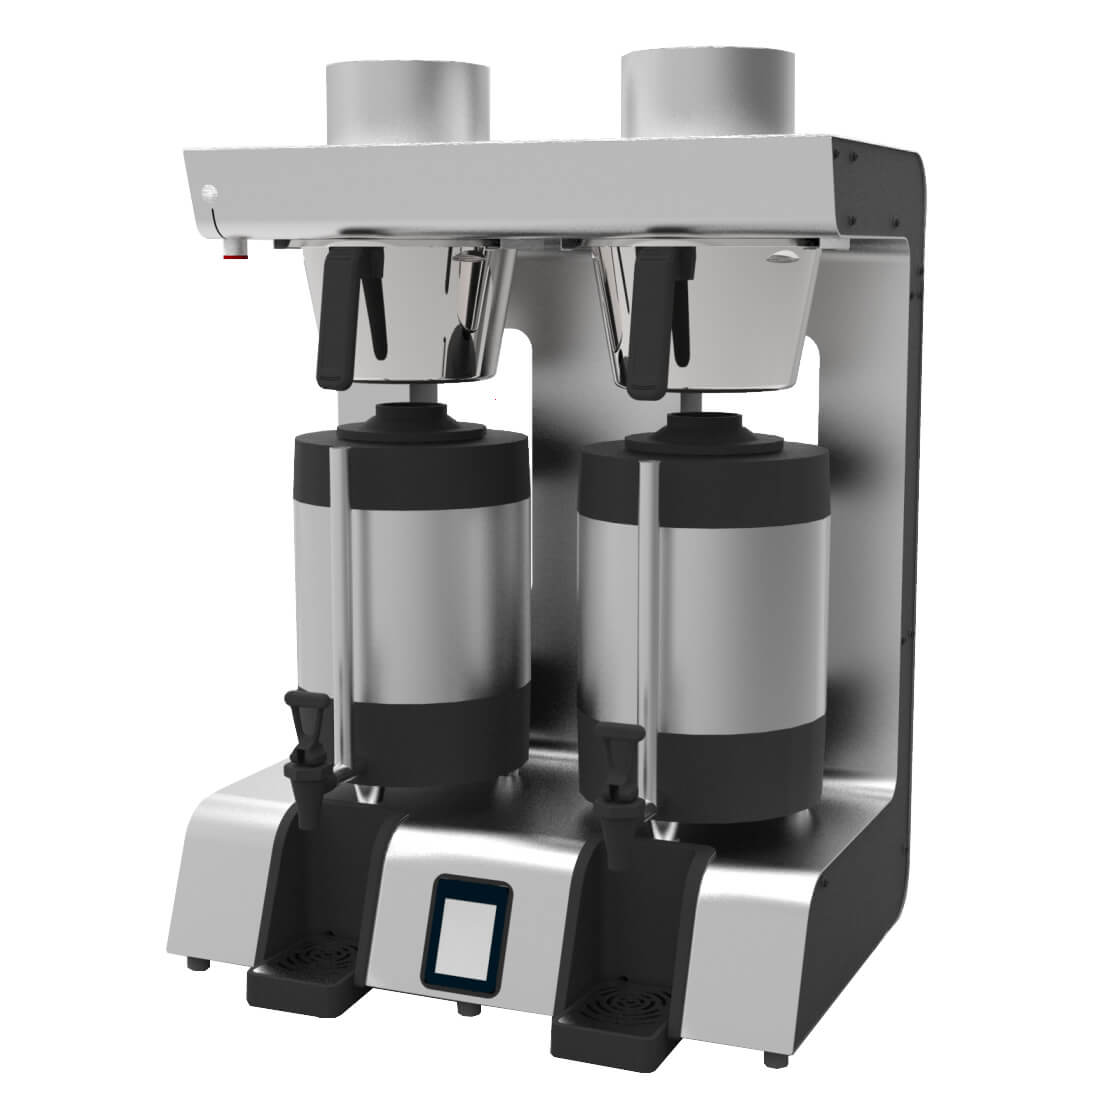 Marco JET6 TWIN commercial thermal brewer left side view black and silver model